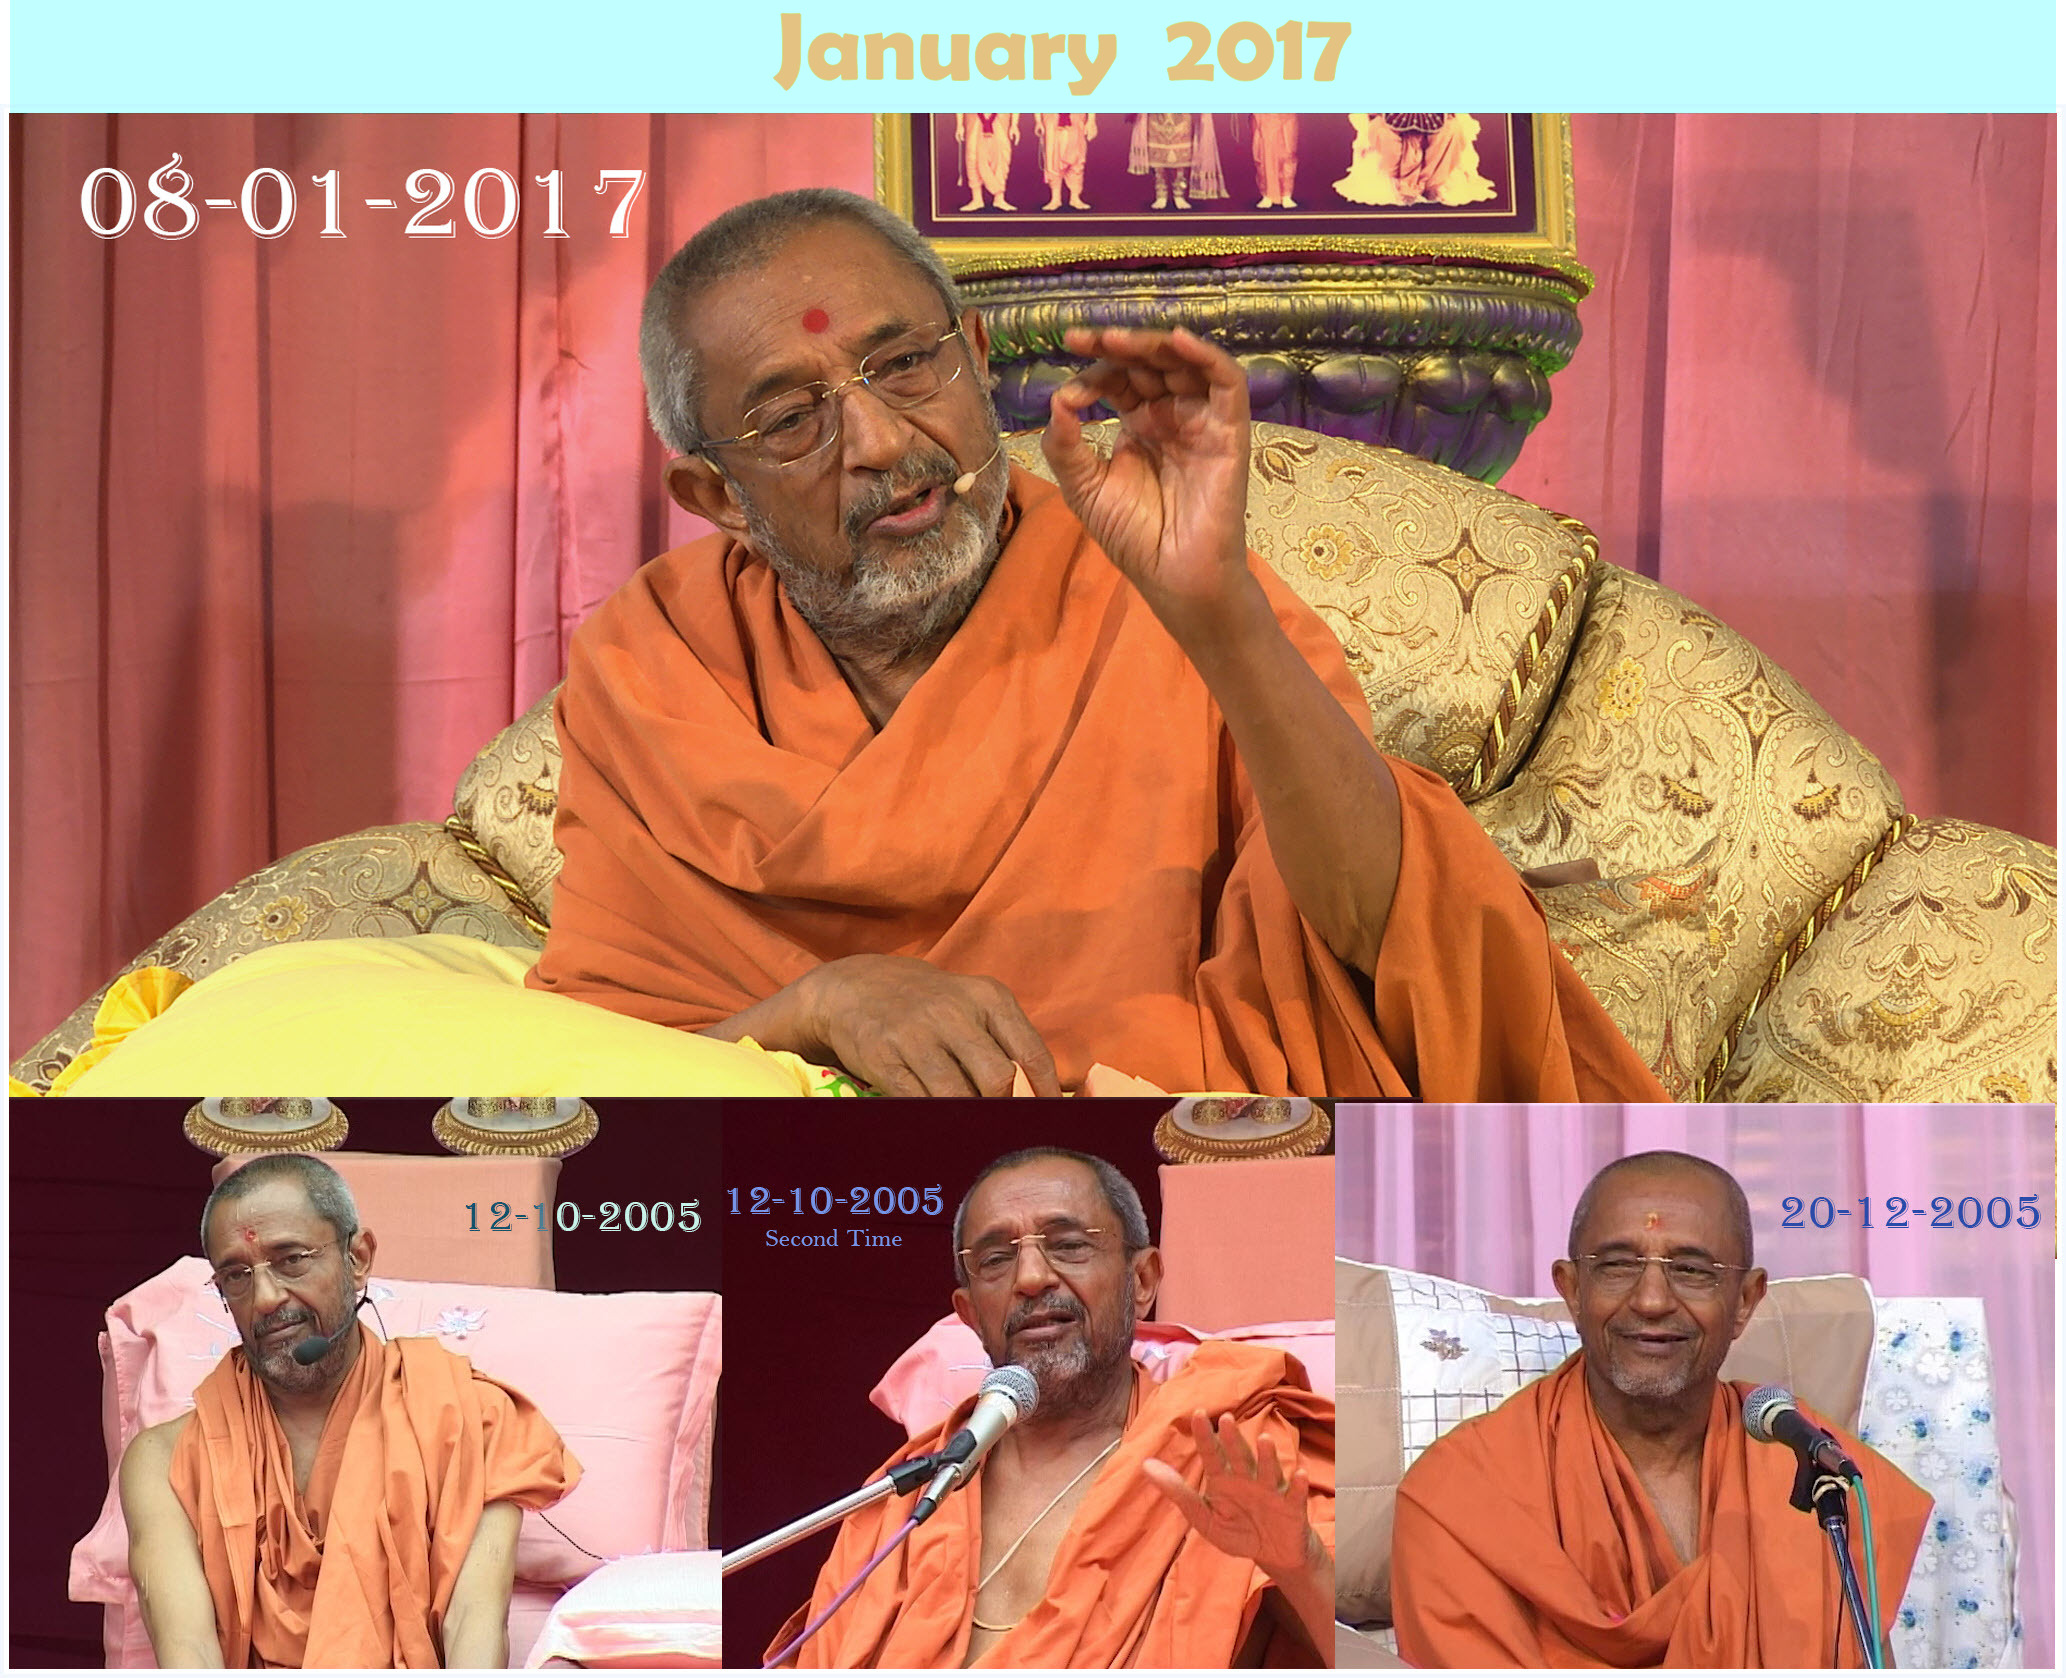 Hari Darshan - Jan. 2017